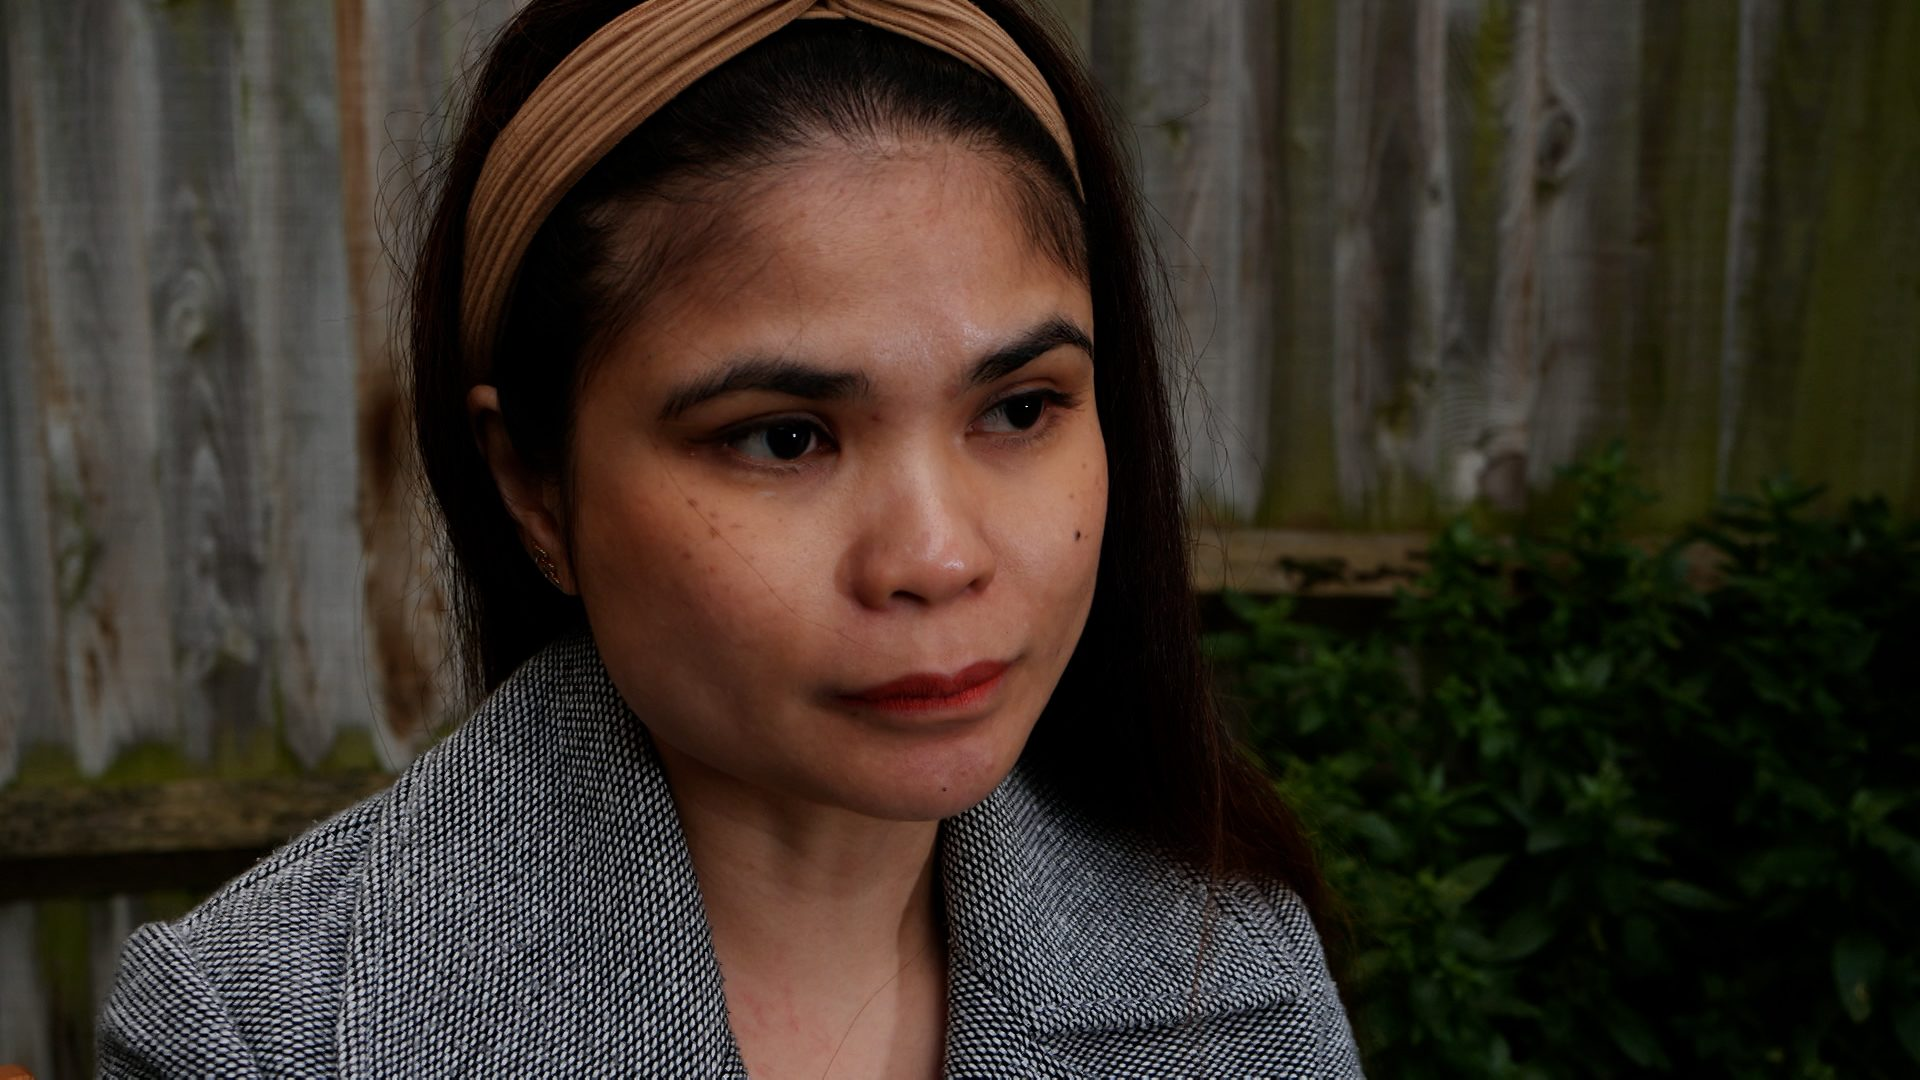 The Filipino NHS staff battling Covid and seeking proper recognition - channel 4